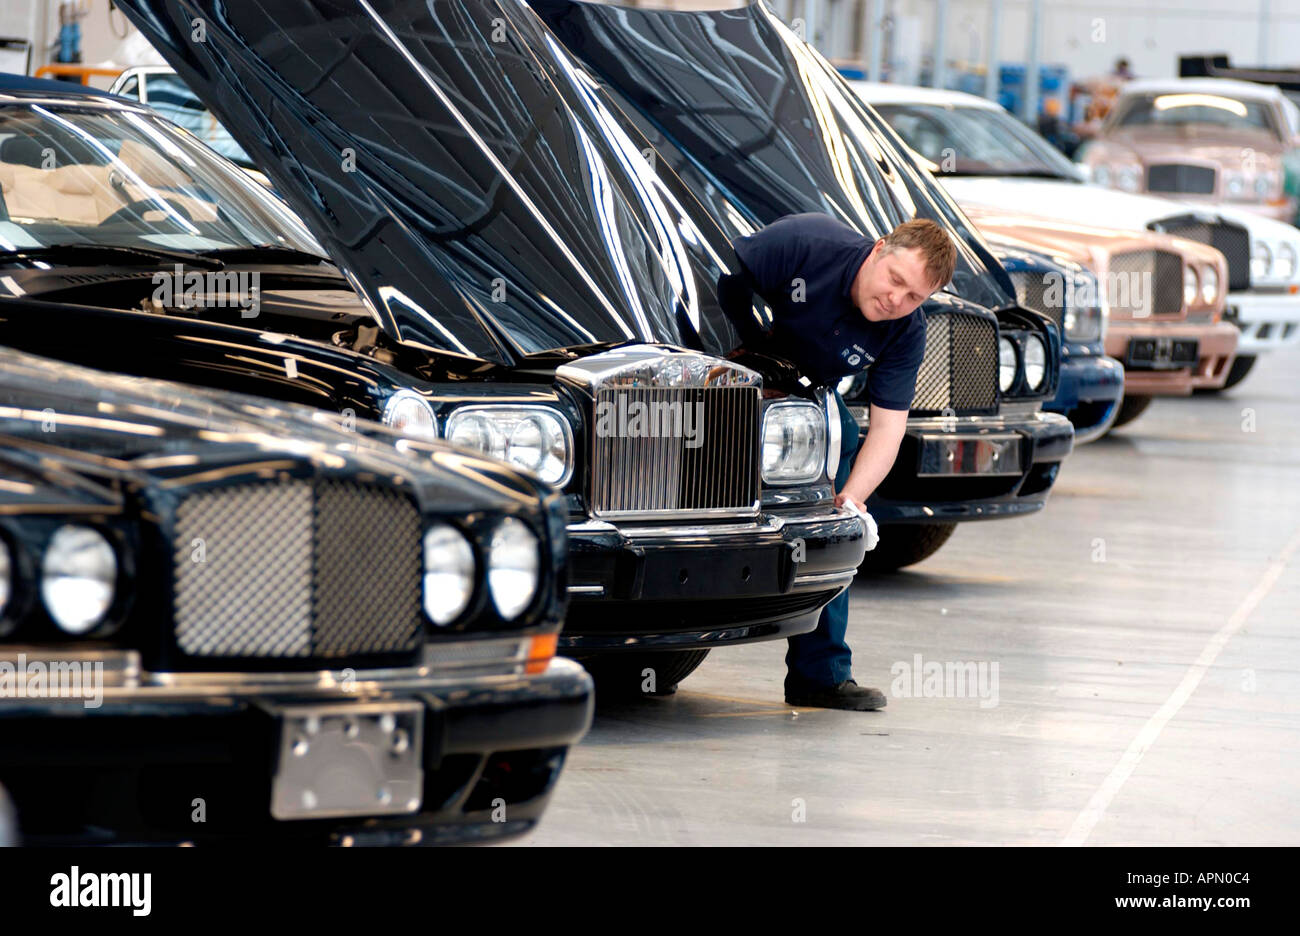 Brand new Bentleys and Rolls Royce luxury cars getting final polish and inspection before leaving the factory - Stock Image